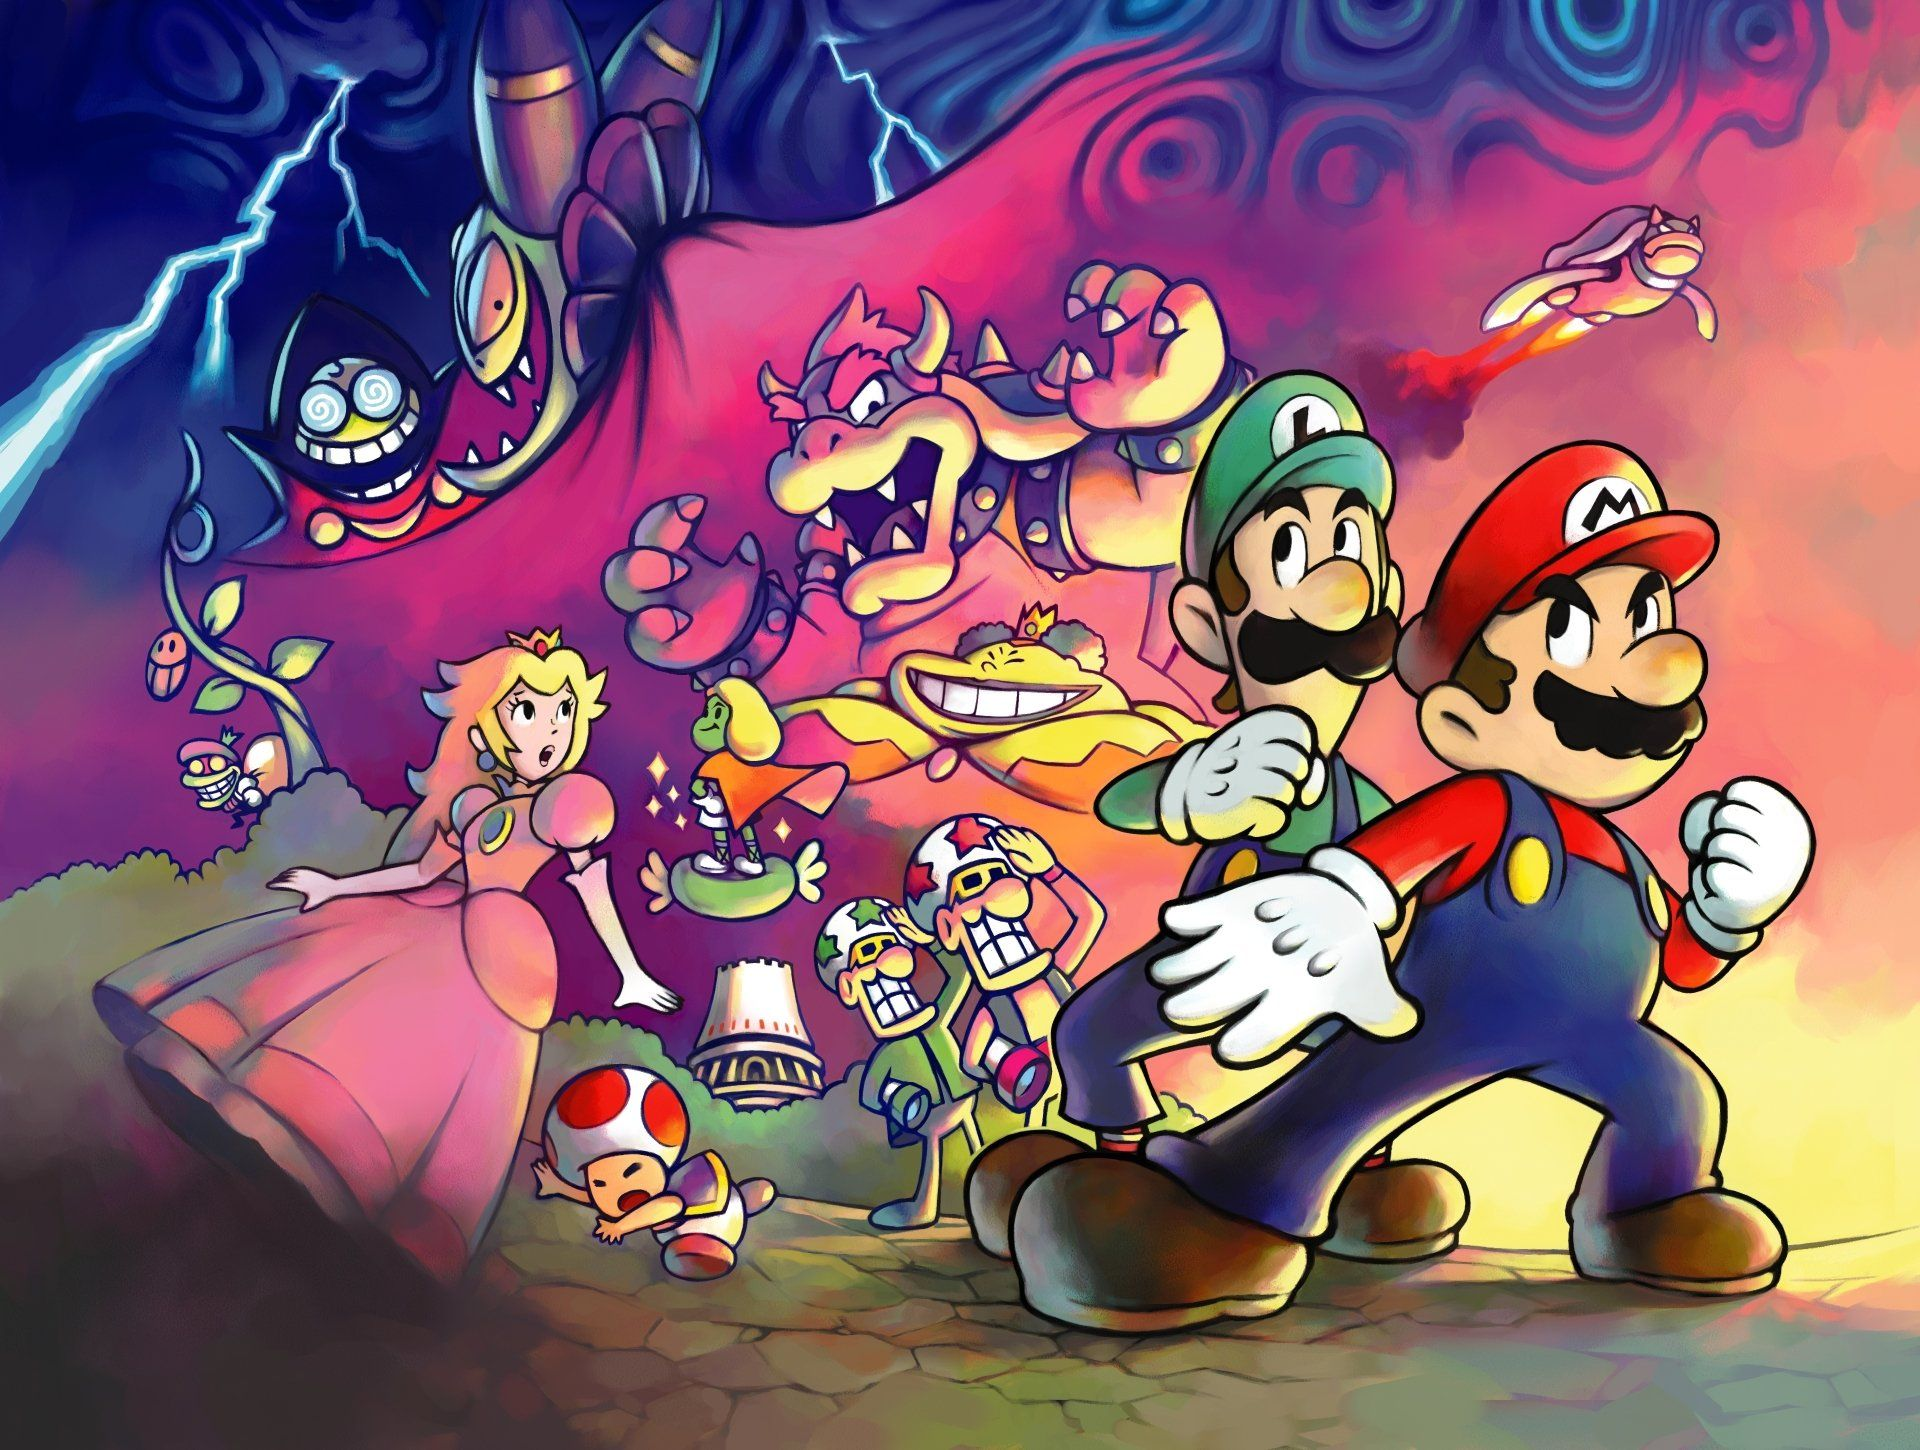 Mario And Luigi Wallpapers Top Free Mario And Luigi Backgrounds